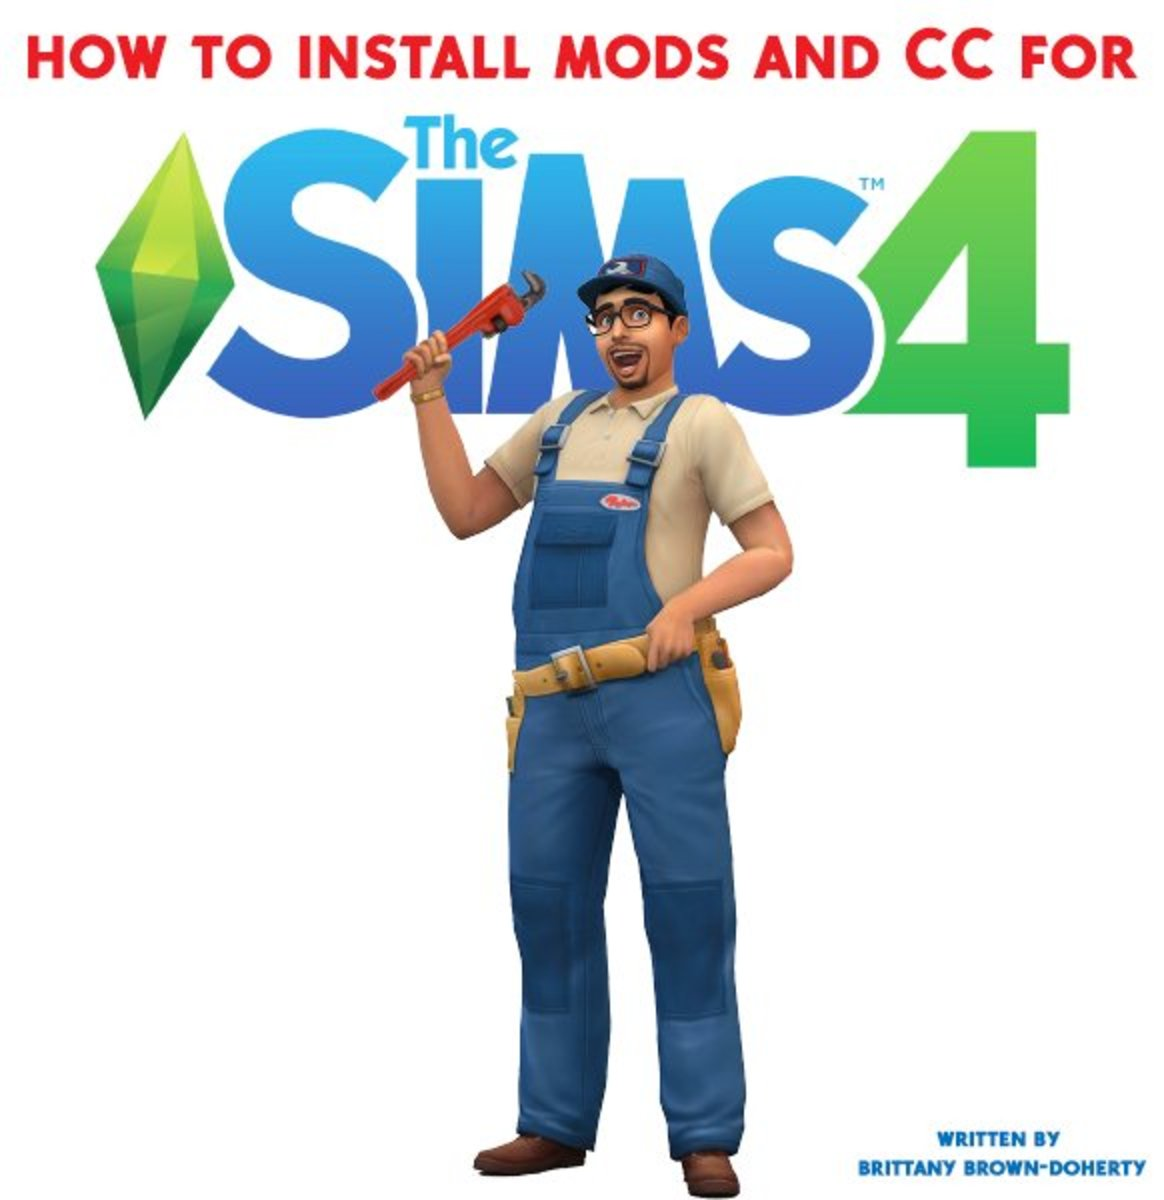 How to install mods and custom content for The Sims 4 (for both Mac and PC users!)